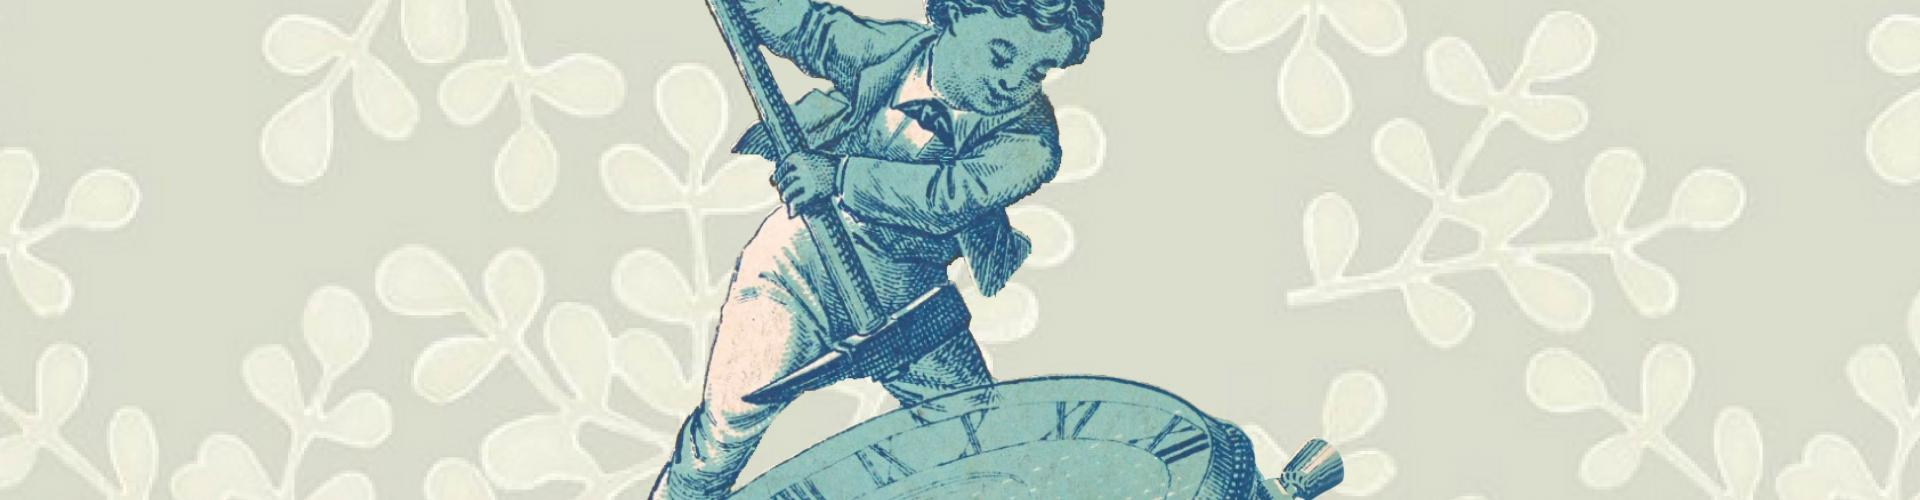 illustration of boy fixing stop watch